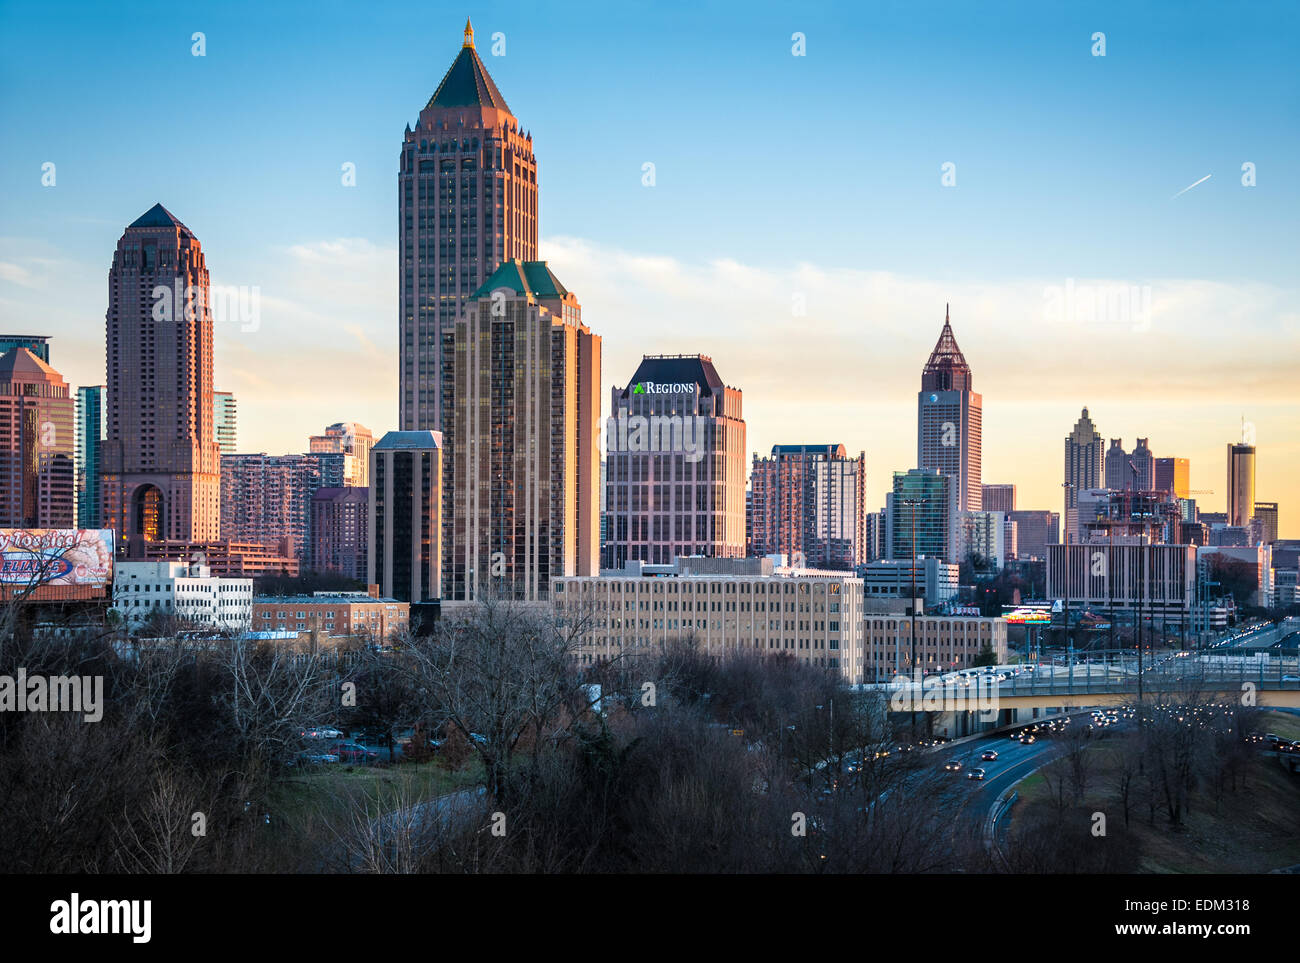 Atlanta, Georgia skyline at sunset. - Stock Image